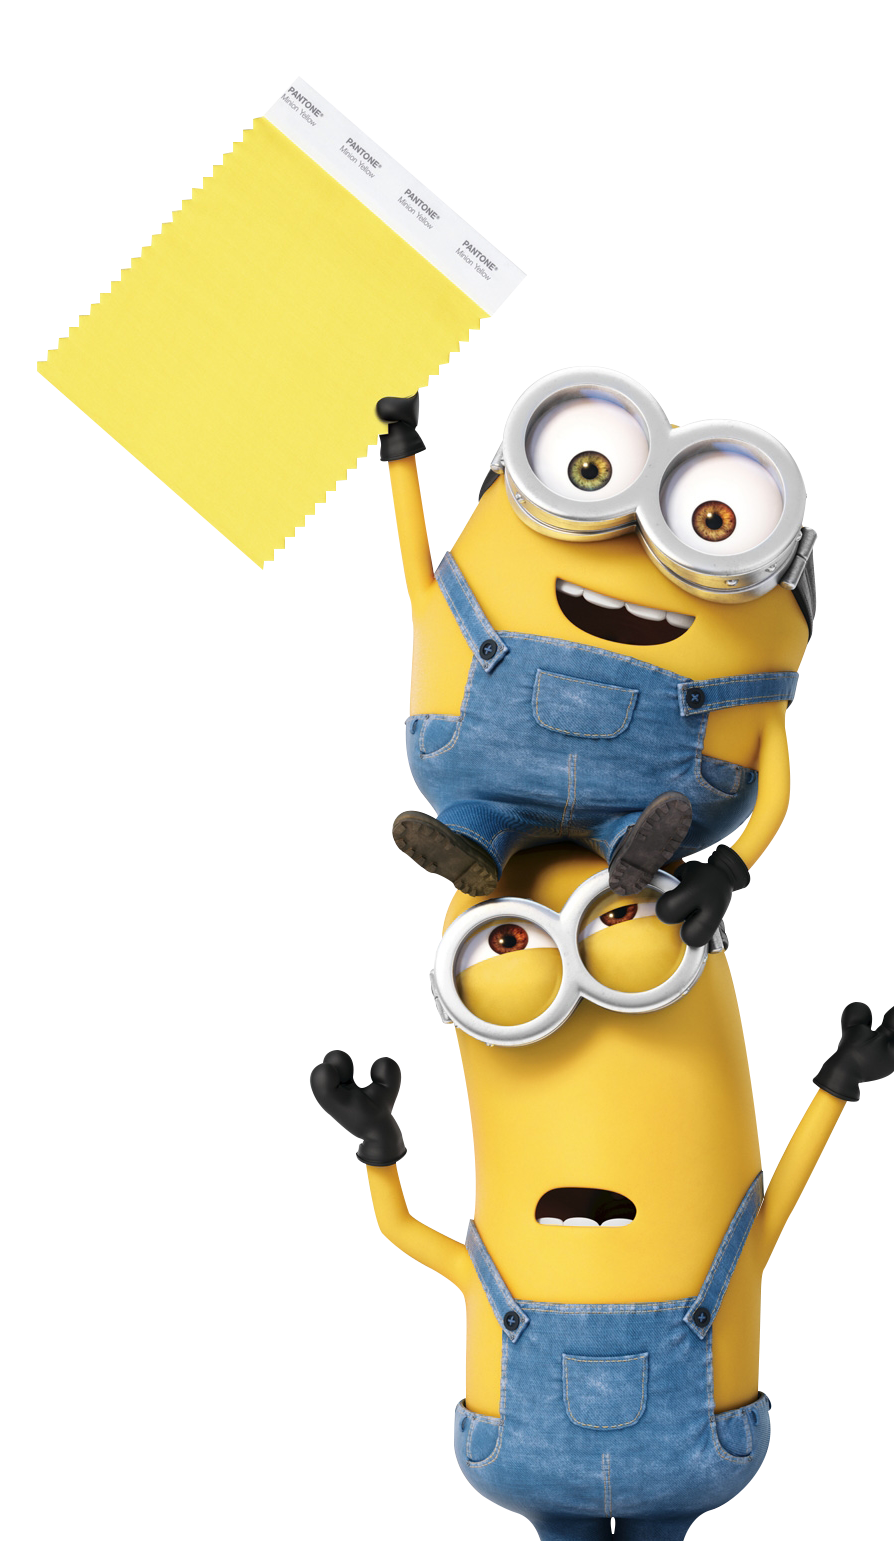 Png images free download. Minions clipart clear background